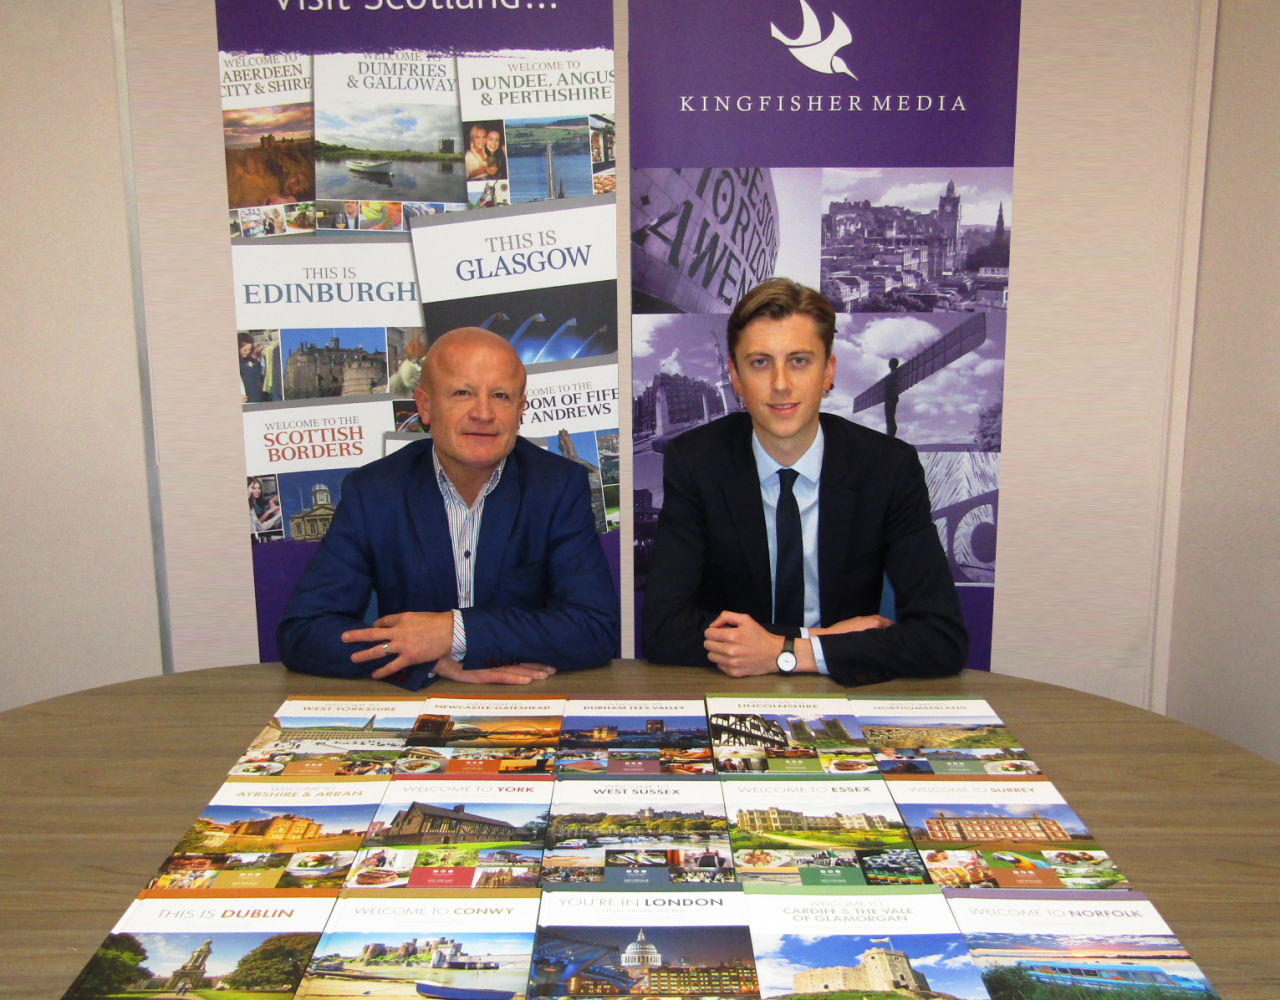 Gateshead company planning to fly in print and online after MBO